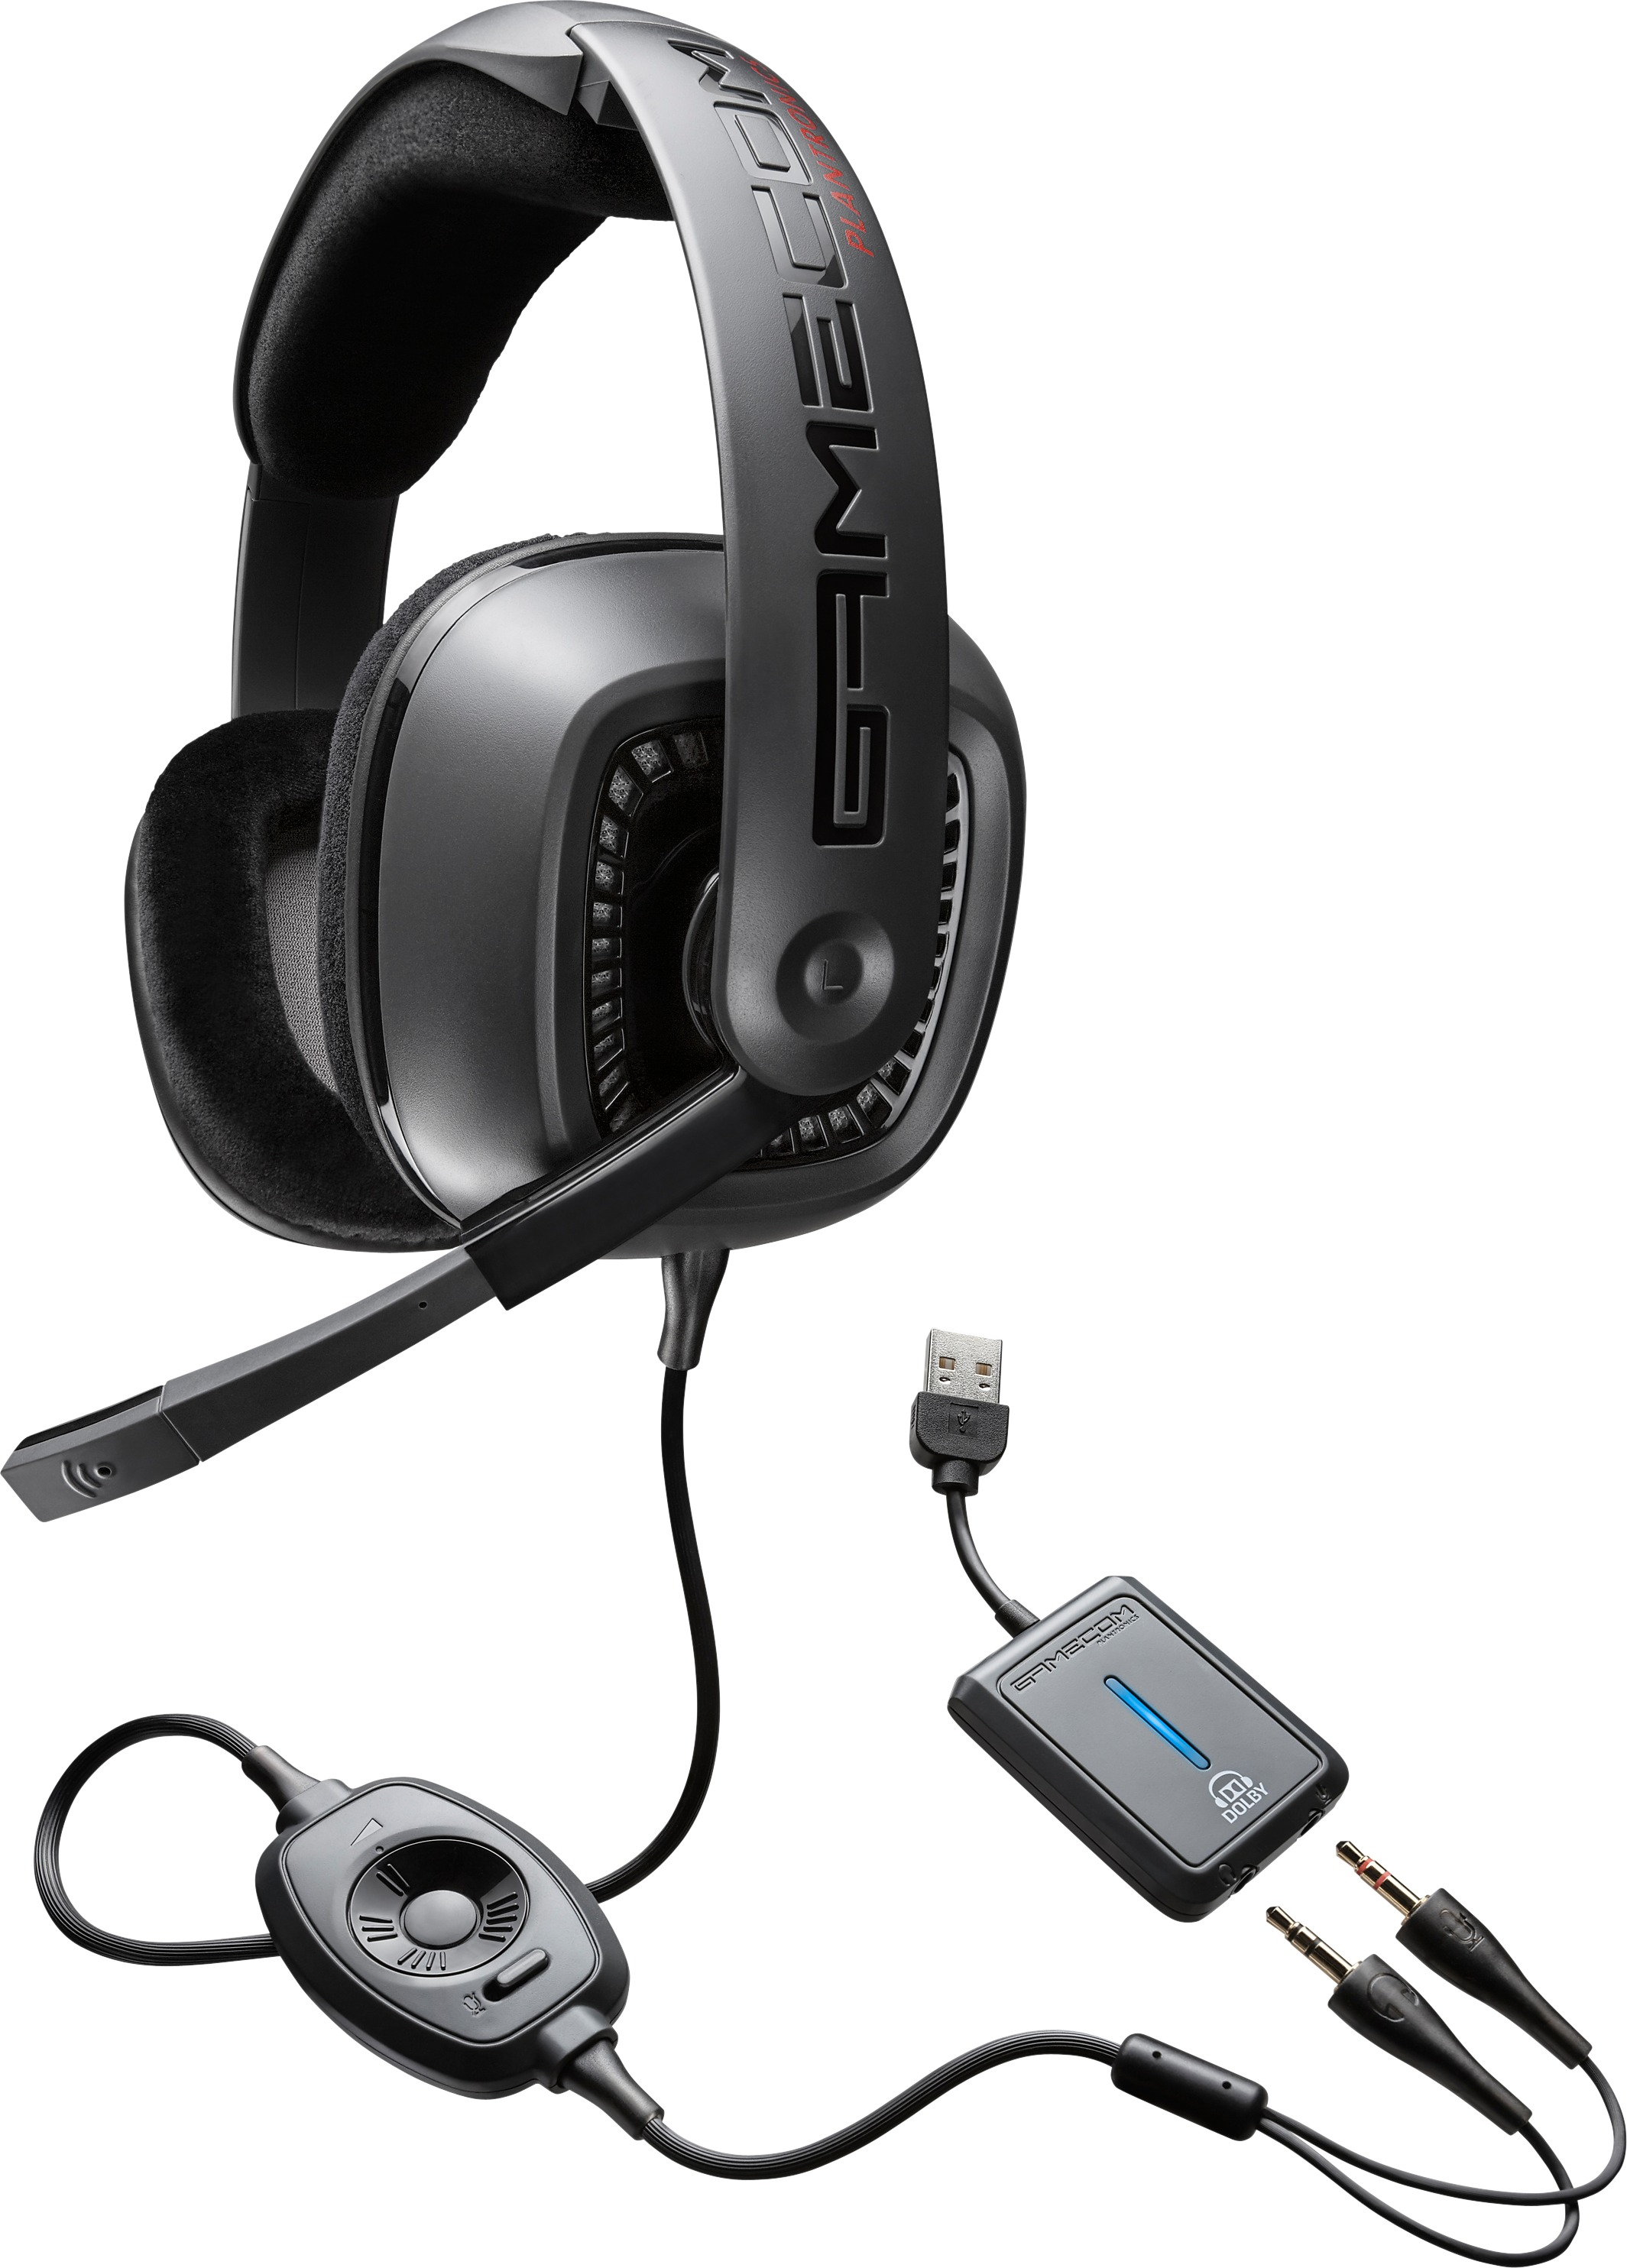 plantronics gamecom 777 7 1 dolby surround sound kopfh rer. Black Bedroom Furniture Sets. Home Design Ideas